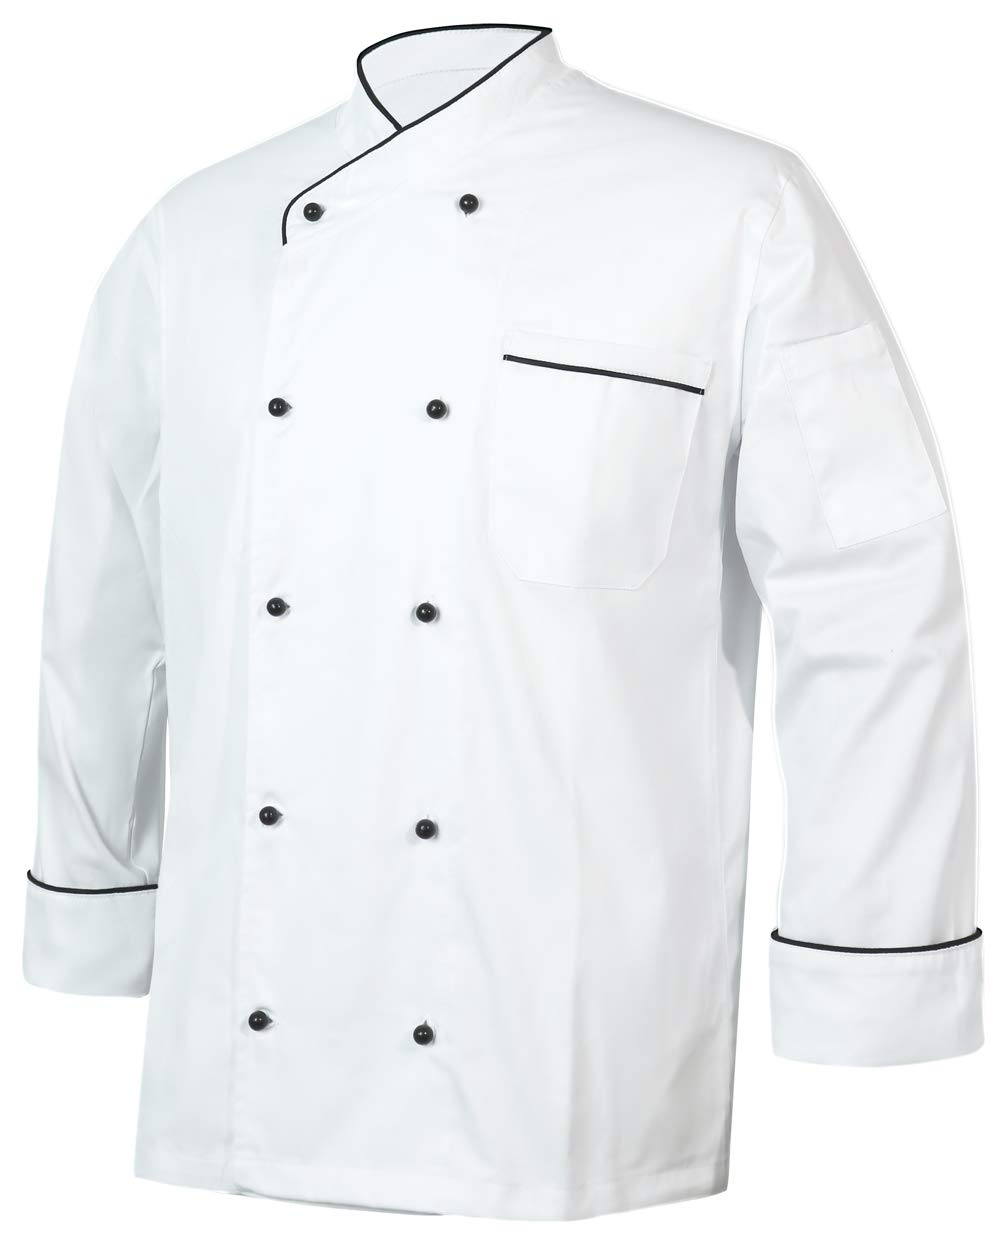 10oz apparel Black Chef Coat Contrast Piping Long Sleeves Jacket (White/Black Piping, XXL) by 10oz apparel